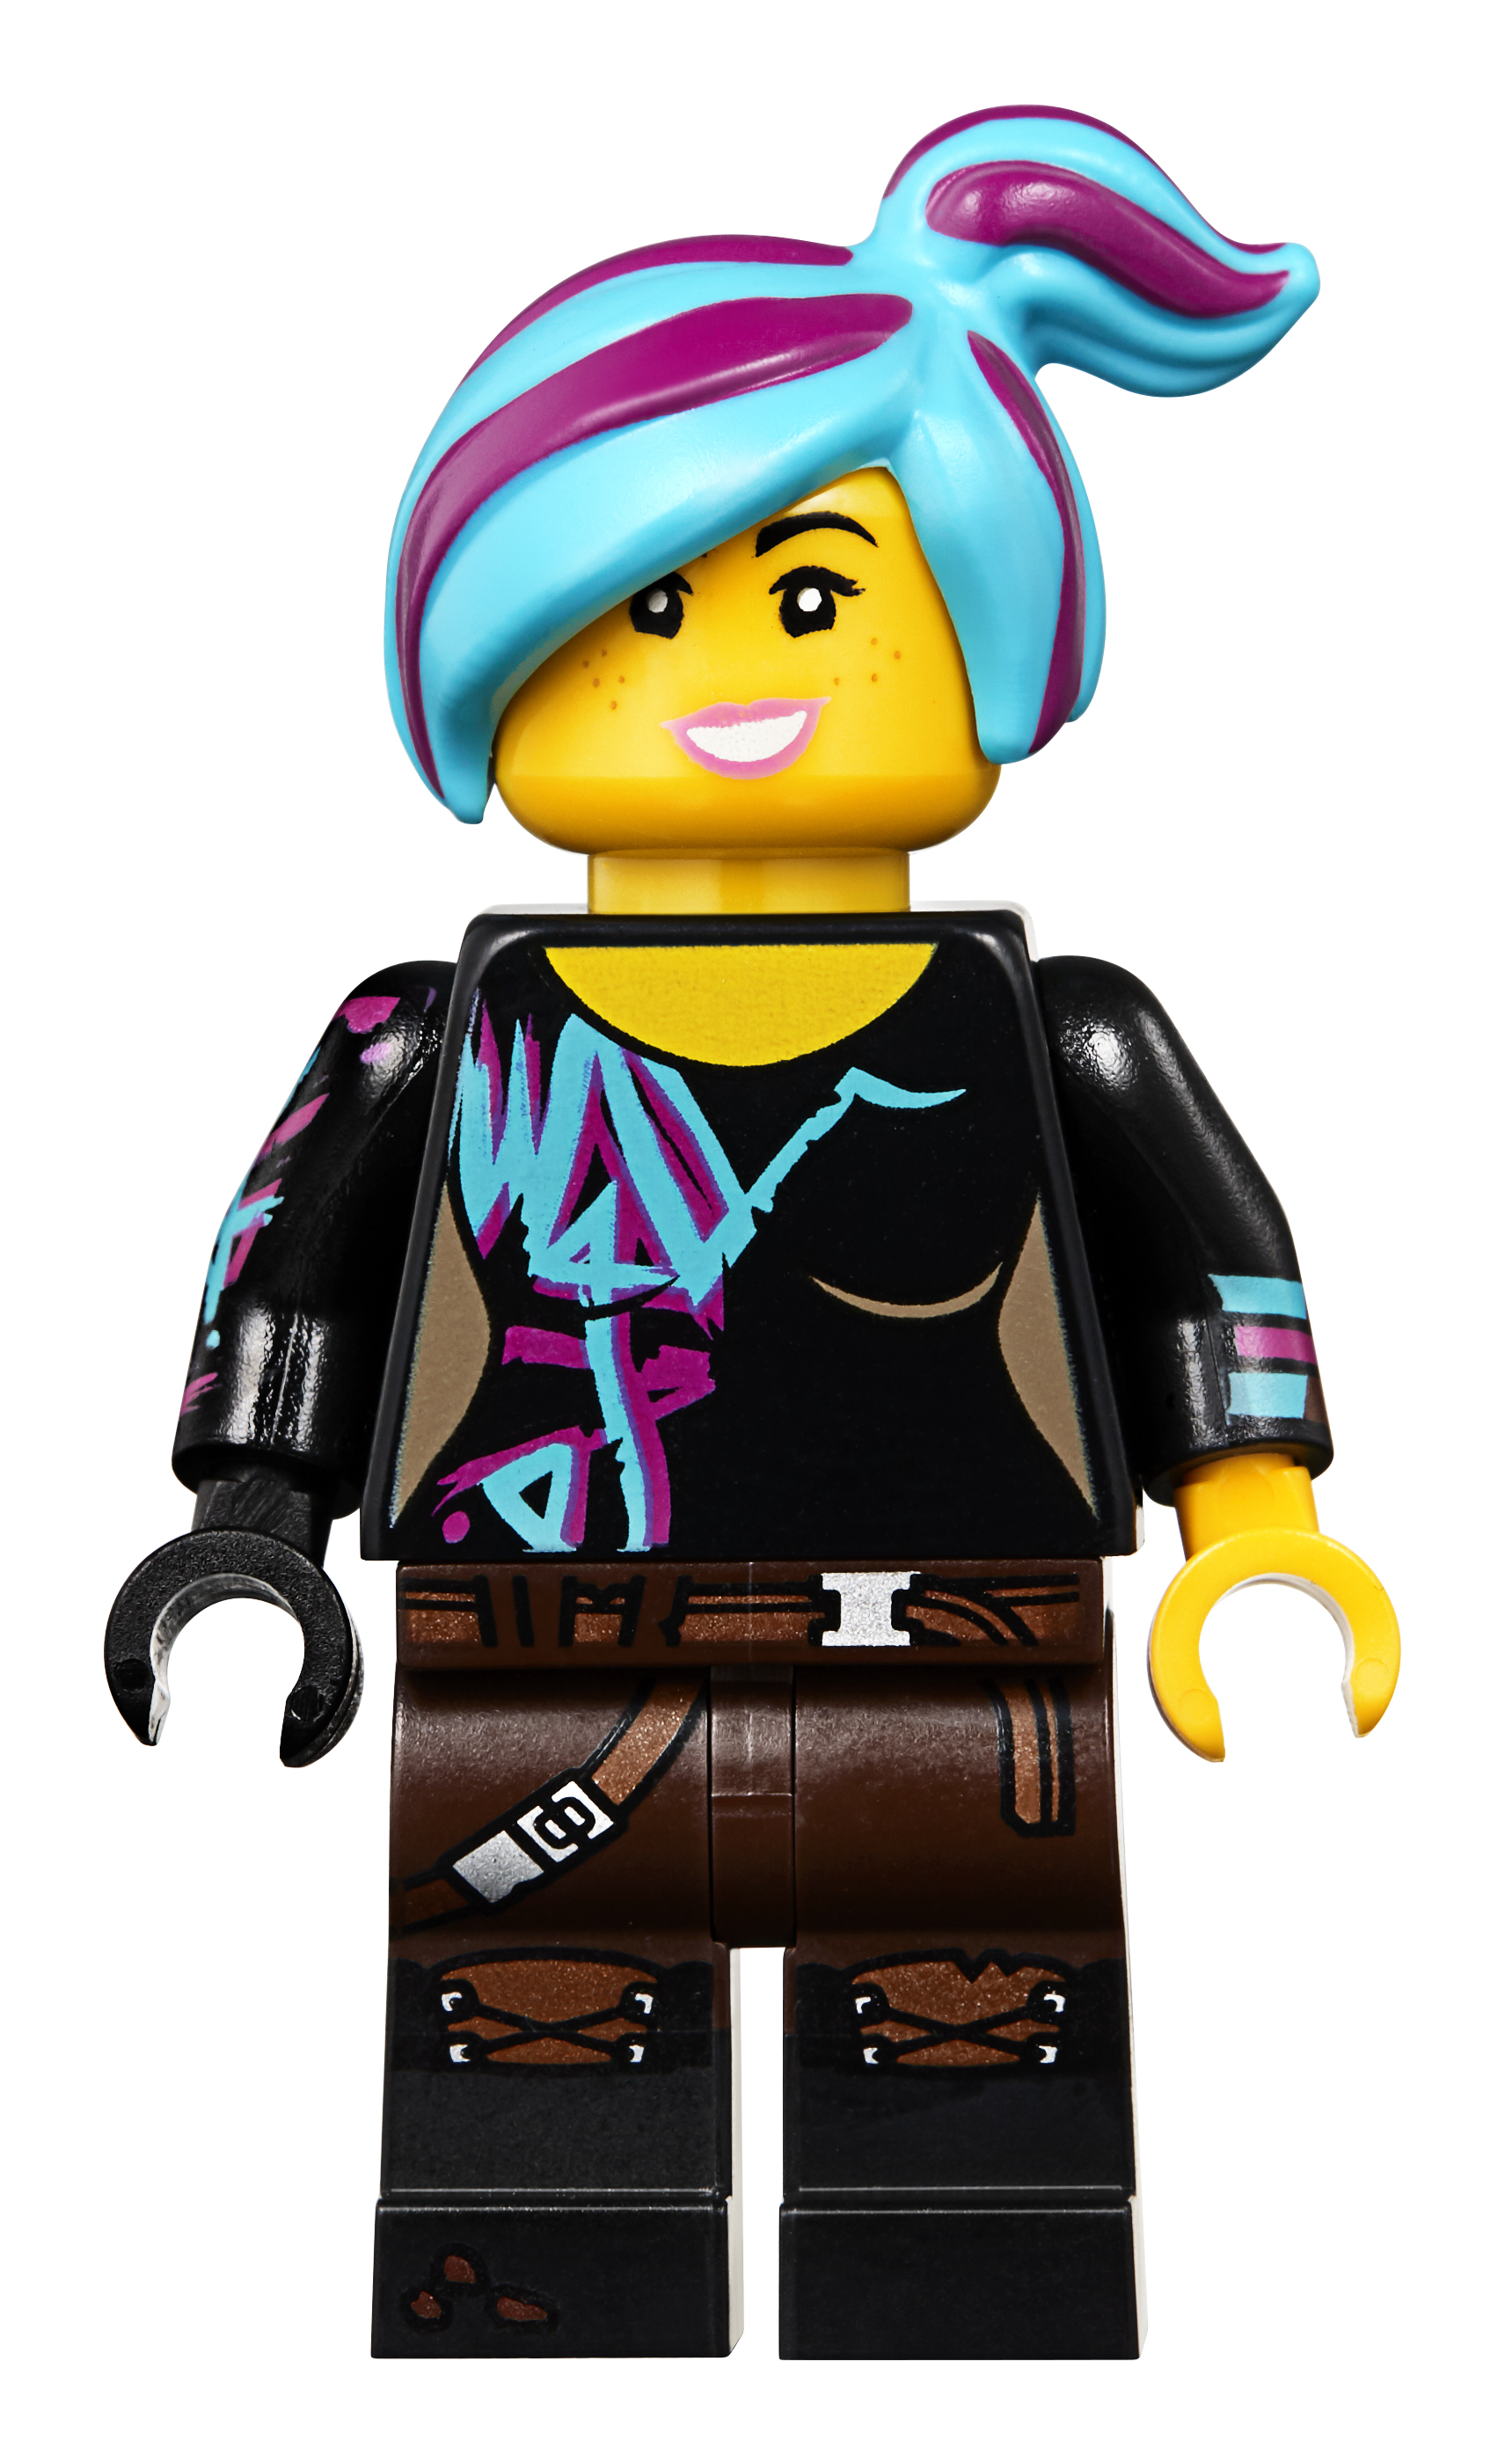 3 more wave 2 playsets for THE LEGO MOVIE 2 are revealed